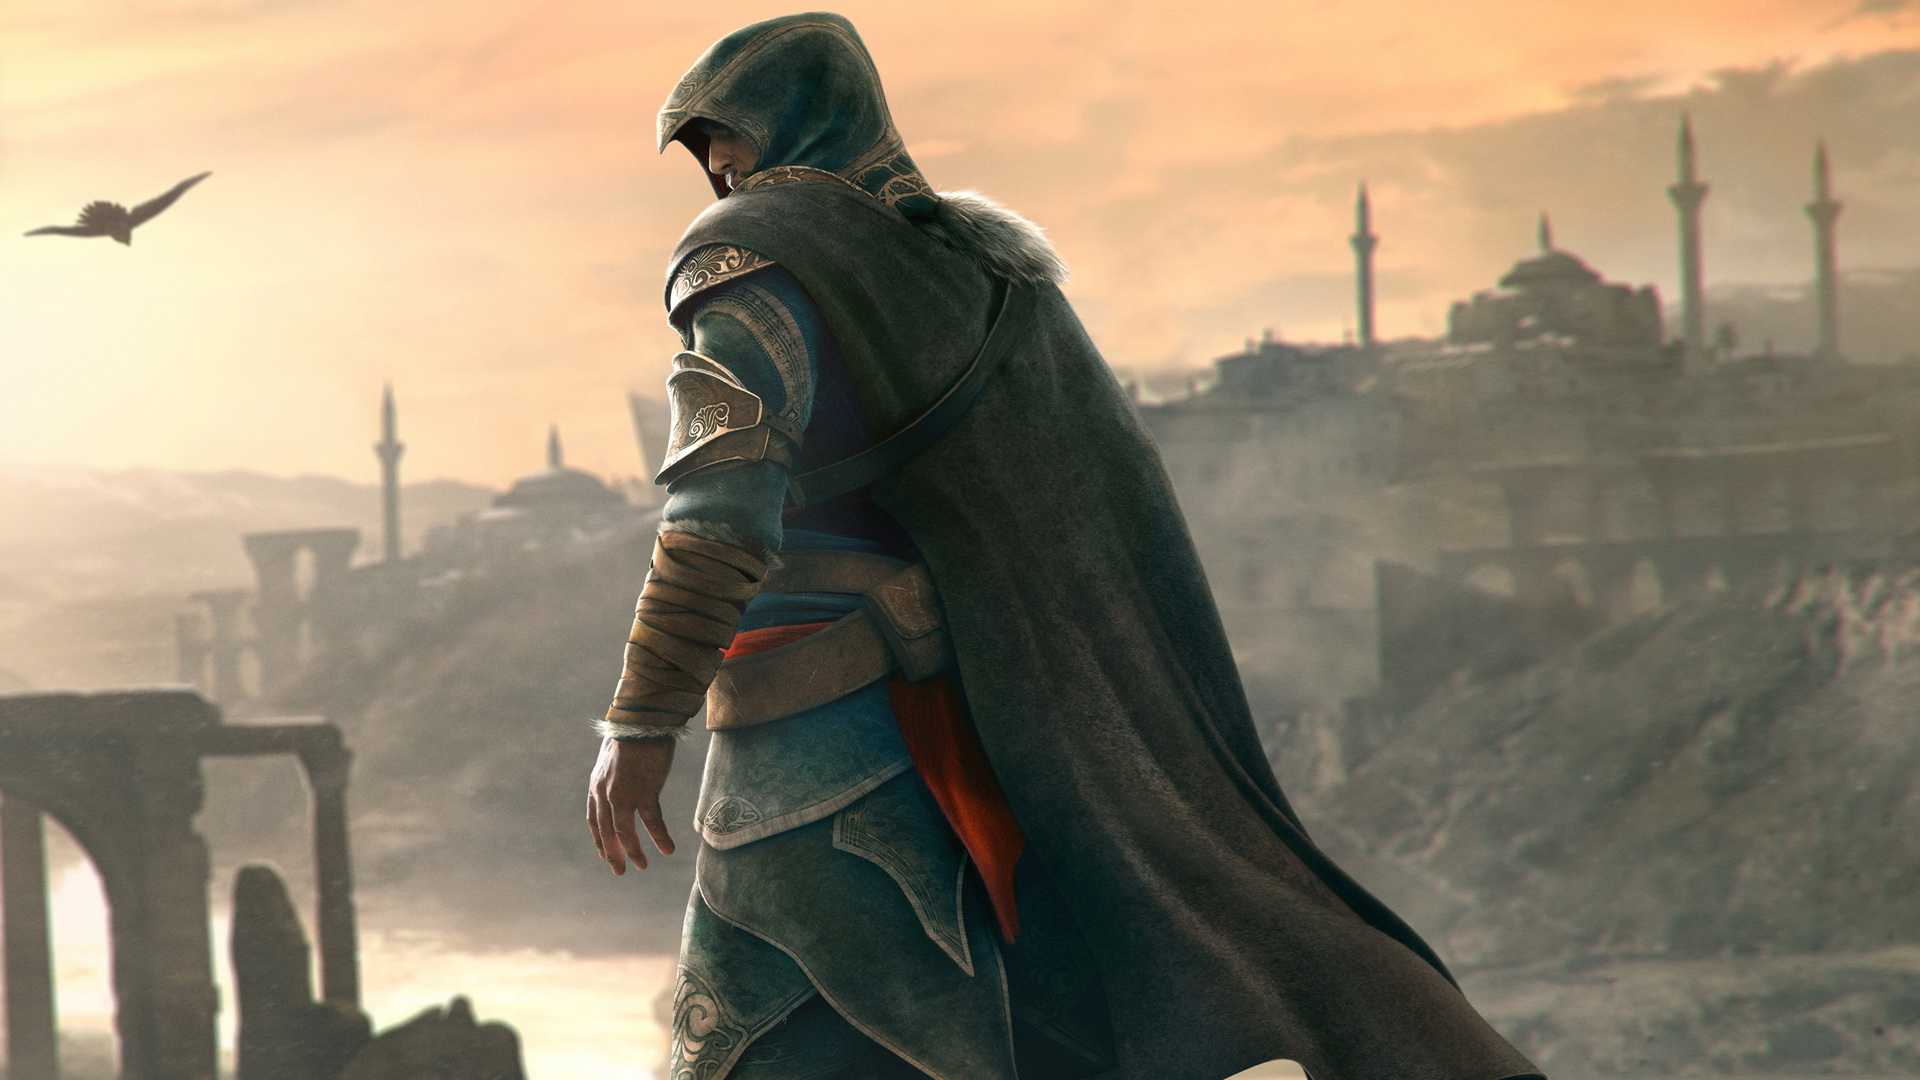 assassins creed revelations 12 Wallpaper PC Game Wallpapers HD 1080p 1920x1080